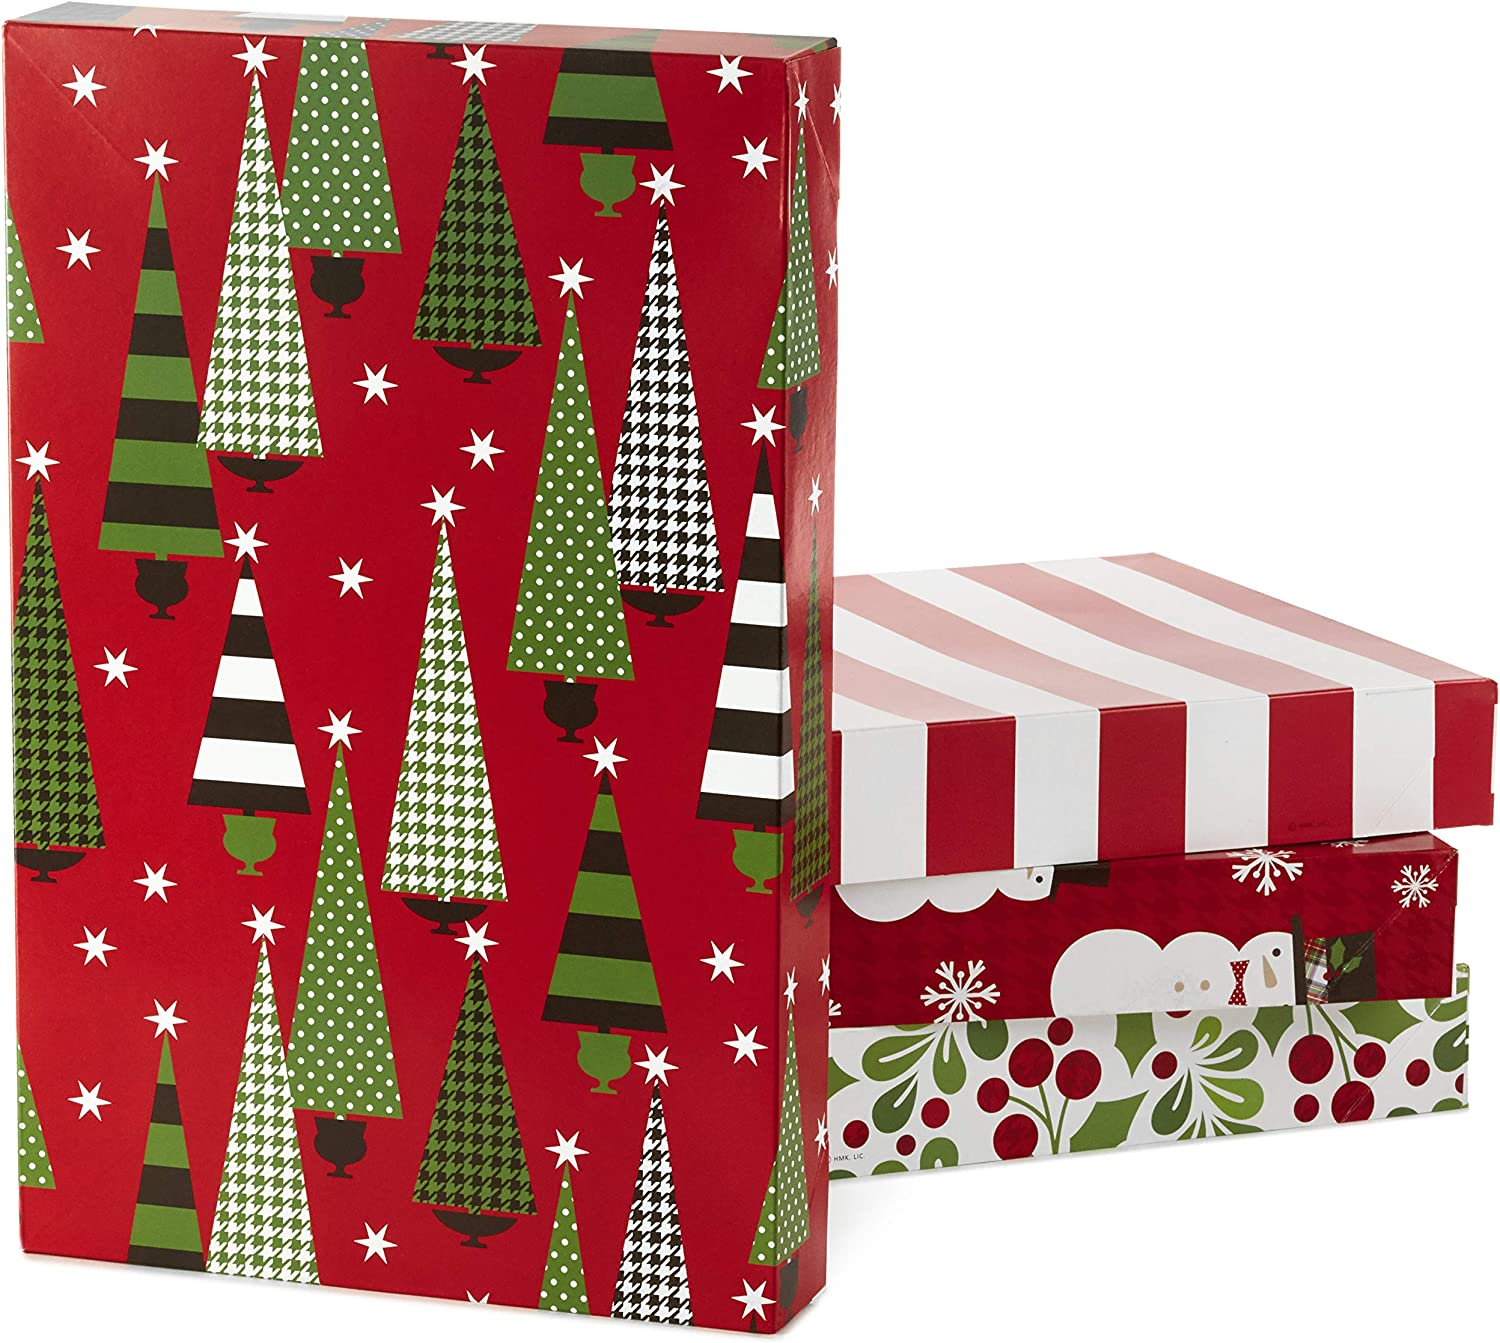 Amazon Com Hallmark Christmas Gift Box Assortment Pack Of 12 Patterned Shirt Boxes With Lids For Wrapping Gifts Kitchen Dining